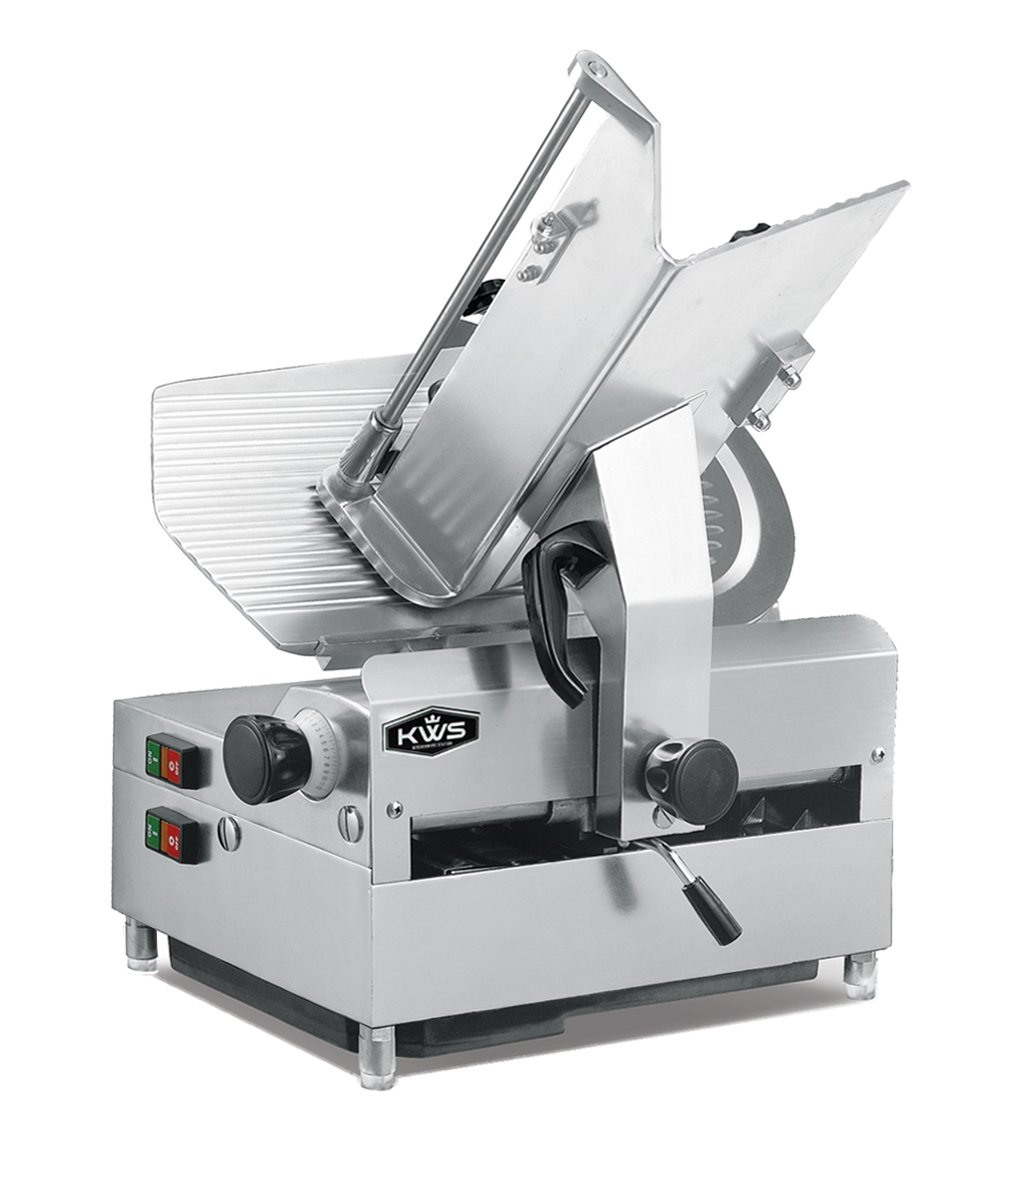 KWS Automatic Commercial 1050w Electric Meat Slicer 12'' Stainless Steel Blade, Frozen Meat, Food Slicer/Low Noises by KitchenWare Station